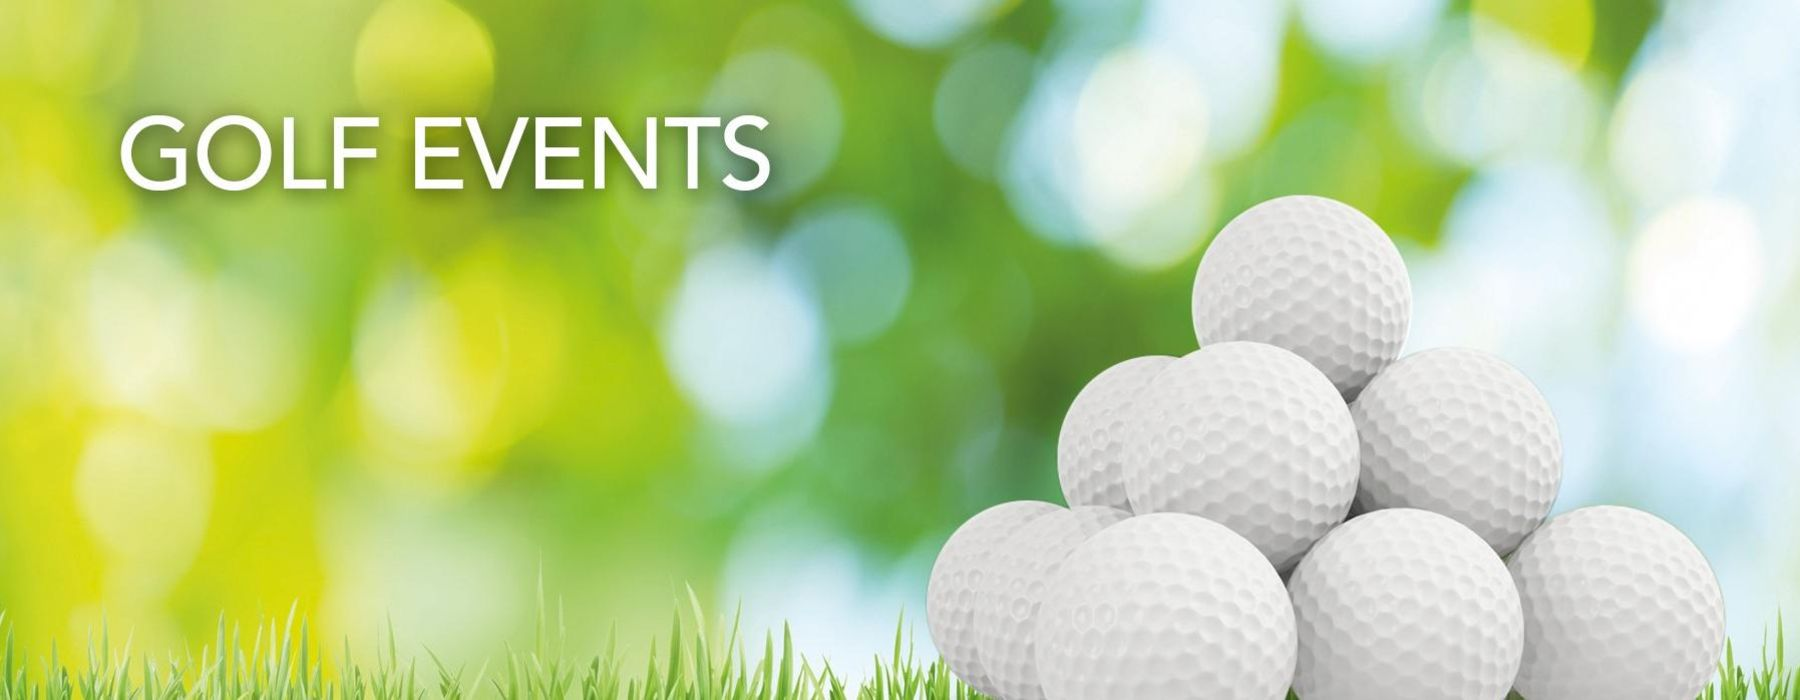 <span>Golffachkongress,</span><br /><span>Messen und Workshops